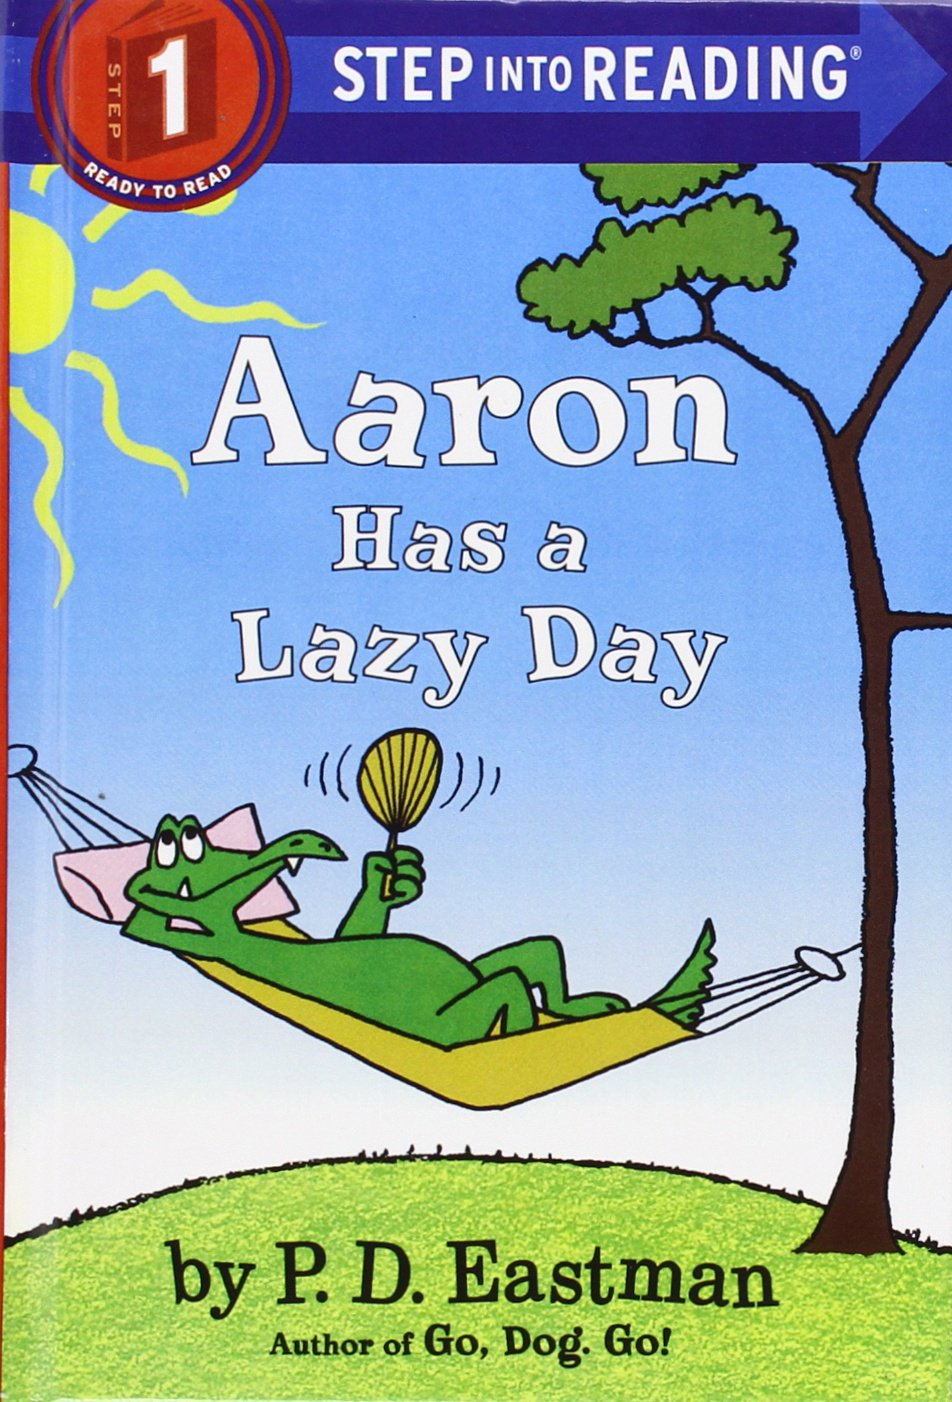 Buy Aaron Has a Lazy Day (Step into Reading  Step 1 Reader